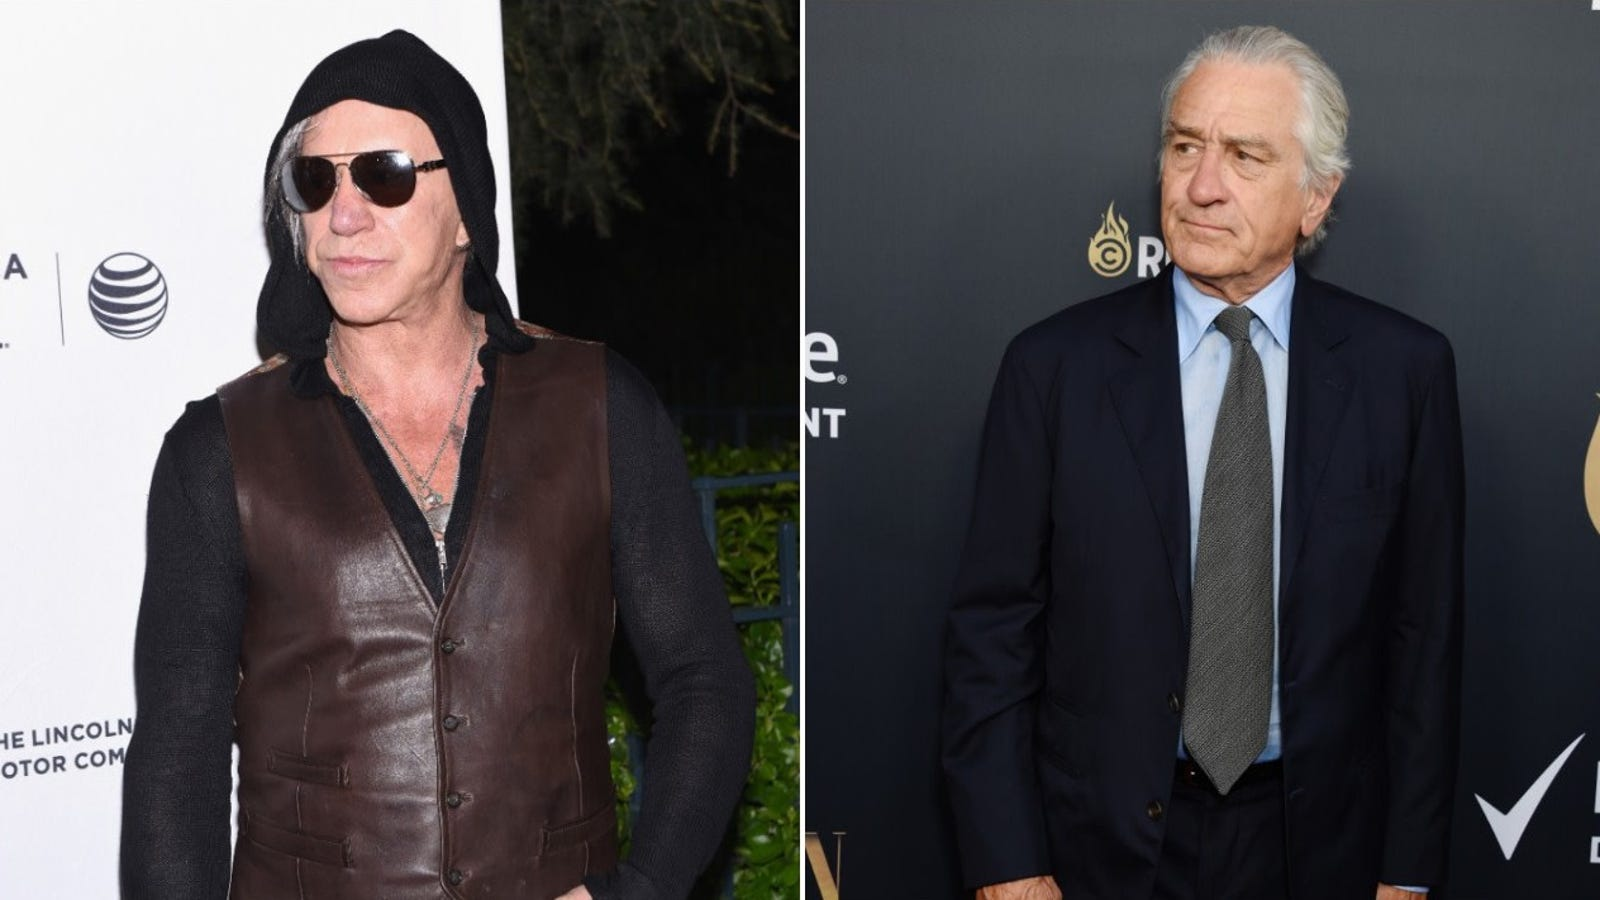 Mickey Rourke and Robert De Niro are embroiled in a vicious feud that we are just now hearing about